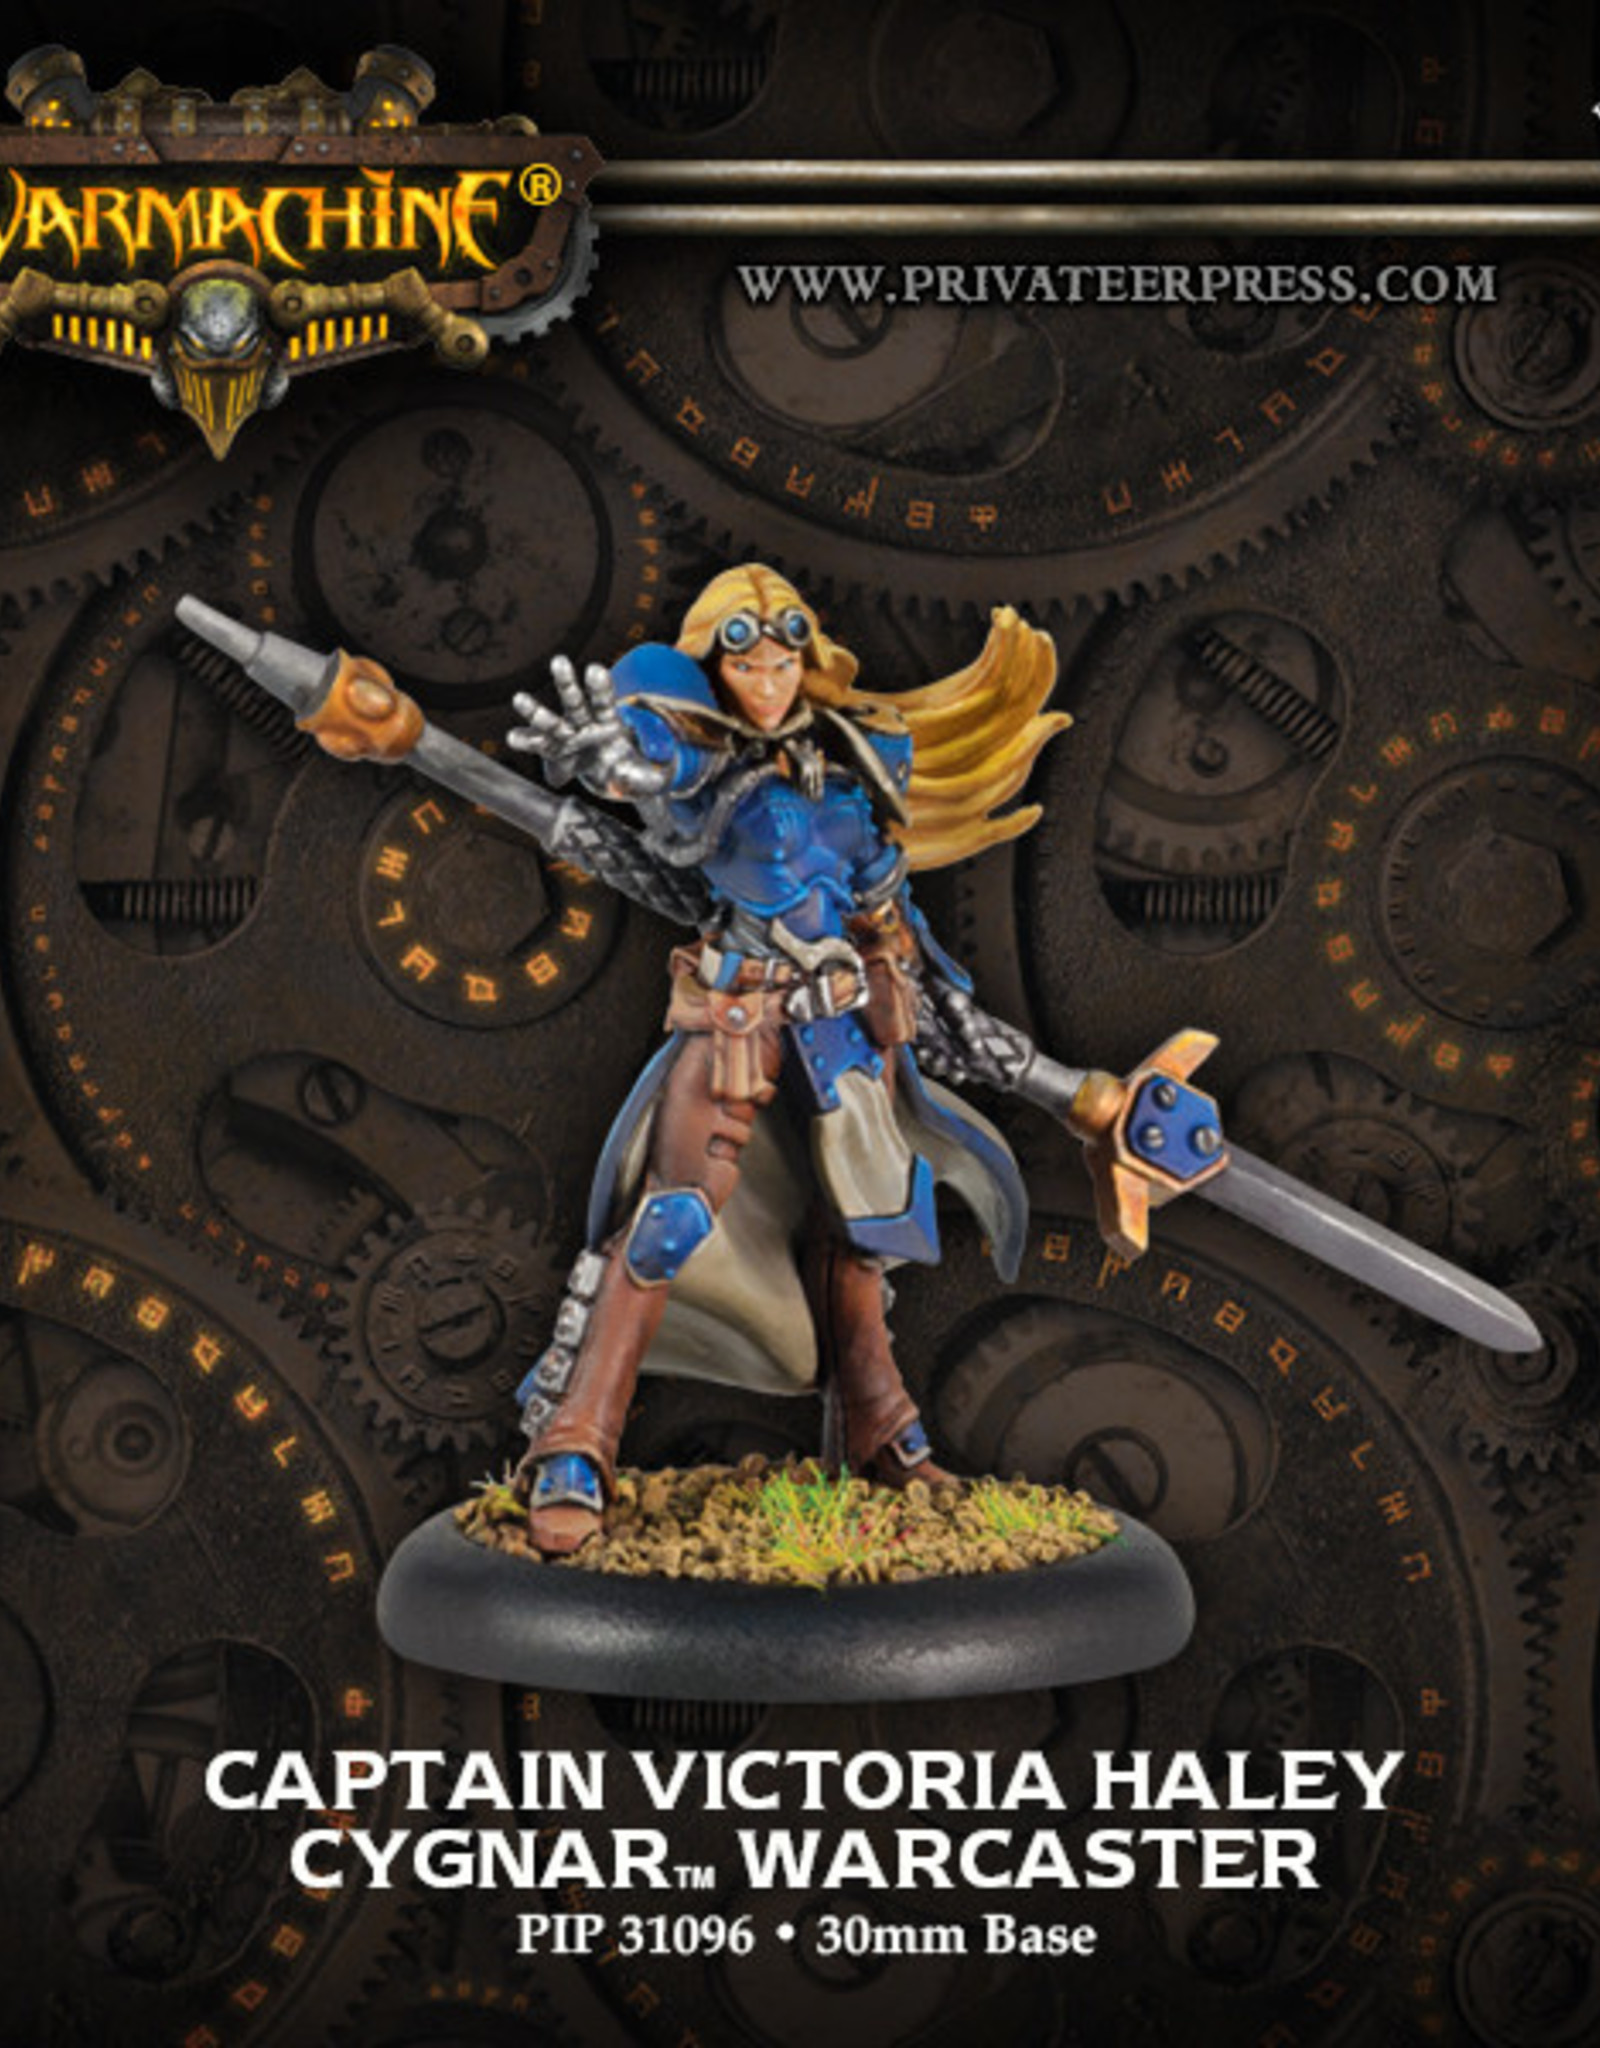 Warmachine Cygnar - Cpt Victoria Haley (r)